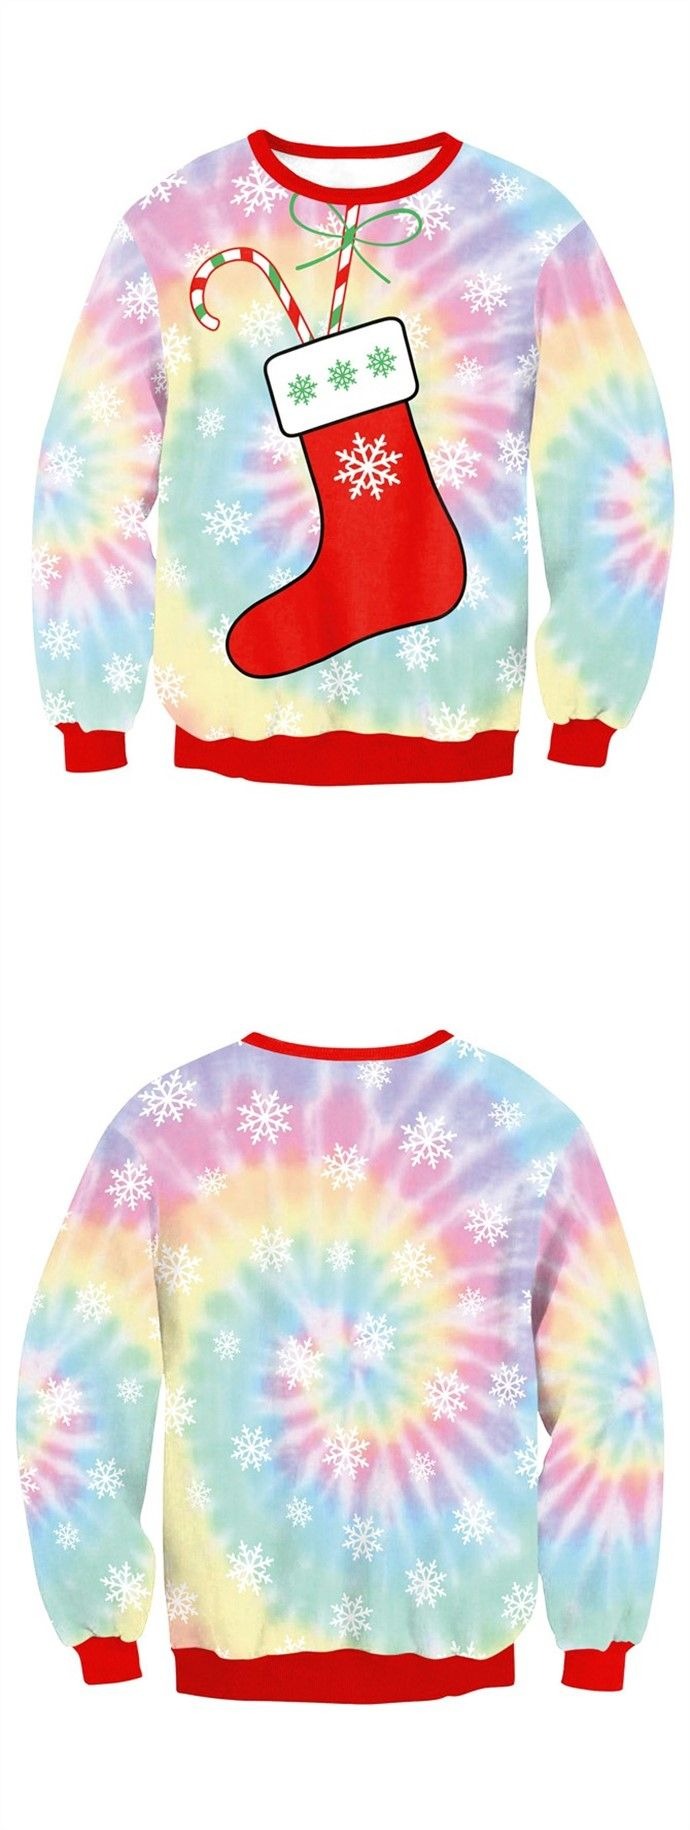 cute Christmas sweaters for women's, winter fashion sweatshirts for christmas party.